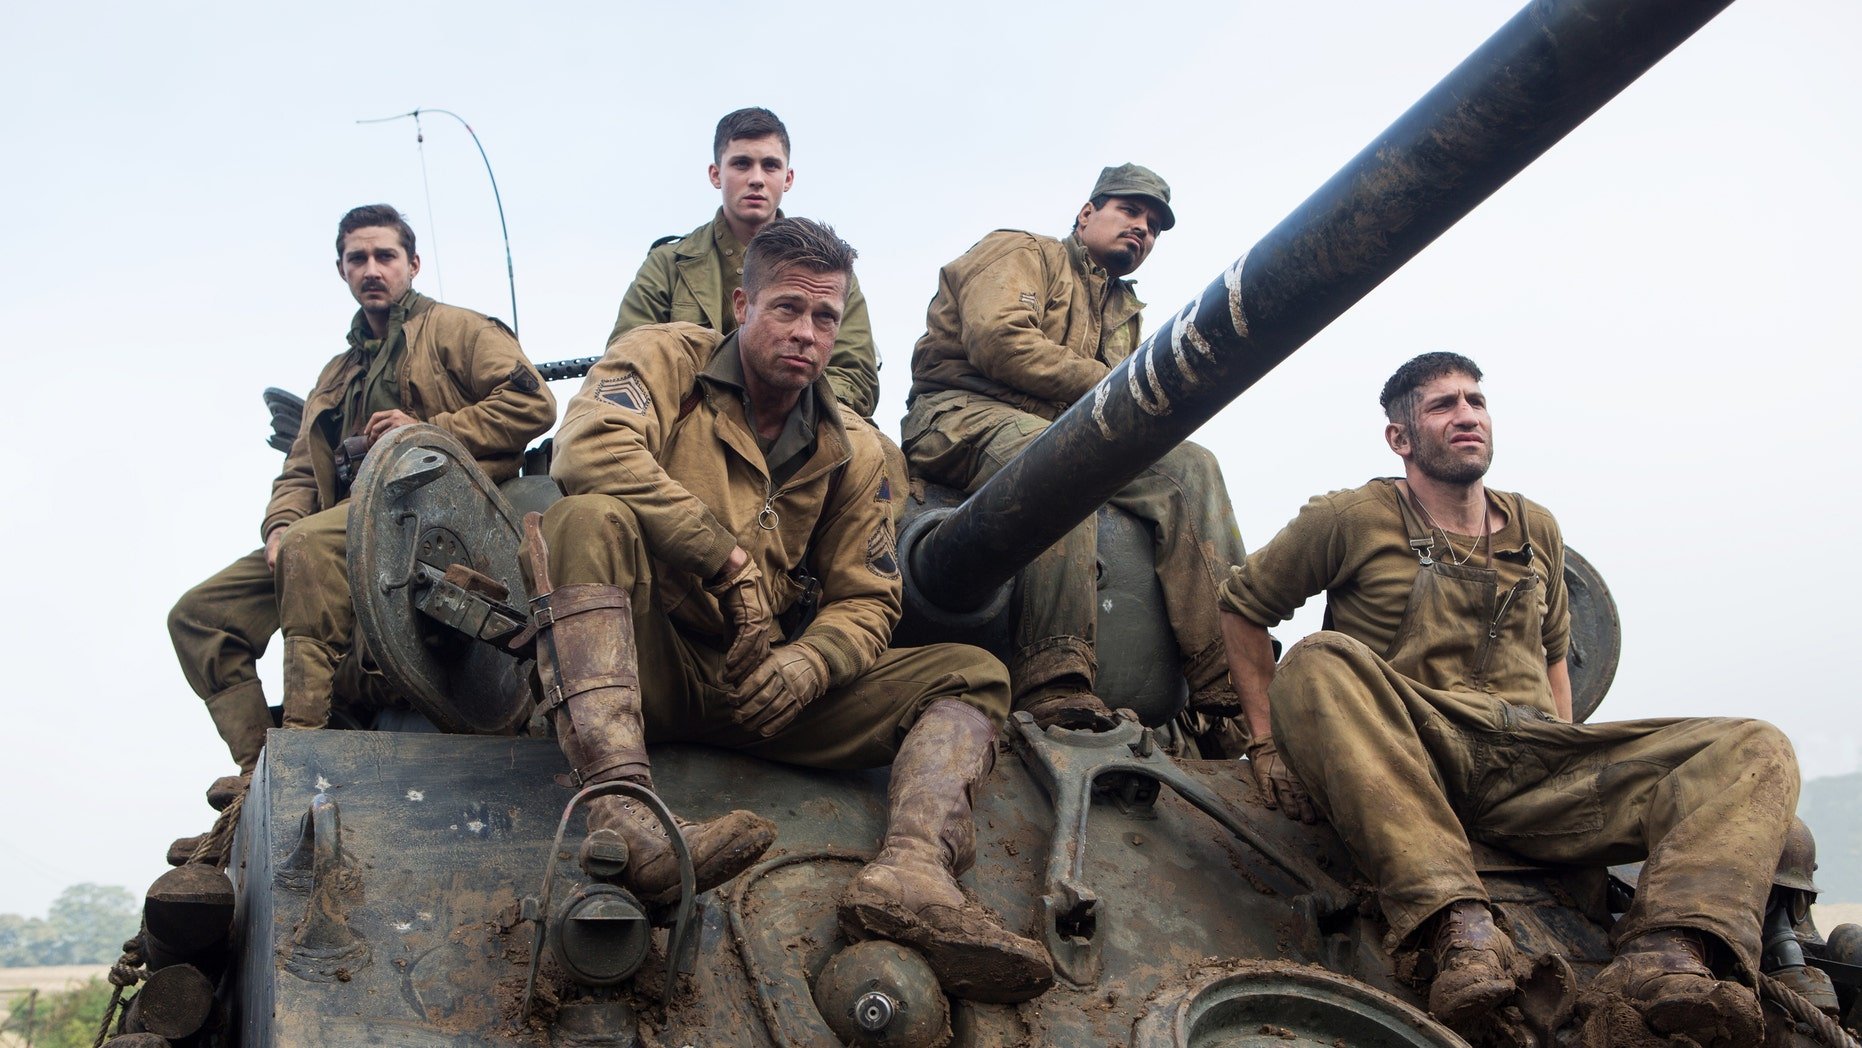 """This photo released by Sony Pictures Entertainment shows, from left, Shia LaBeouf as Boyd """"Bible"""" Swan, Logan Lerman as Norman, Brad Pitt as Sgt. Don âWardaddyâ Collier, Michael Pena as Trini """"Gordo"""" Garcia, and Jon Bernthal as Grady """"Coon-Ass"""" Travis, in Columbia Pictures' """"Fury."""" Before the World War II tank drama reaches theaters Oct. 17, gamers can make like Pitt's character and steer a virtual rendition of the M4A3E8 Sherman tank he commands in the film in the game """"World of Tanks."""" It's the latest example of a likeminded movie and game aligning to hype each other, and it marks the first Hollywood pact for the popular online tank combat title. (AP Photo/Sony Pictures Entertainment, Giles Keyte)"""